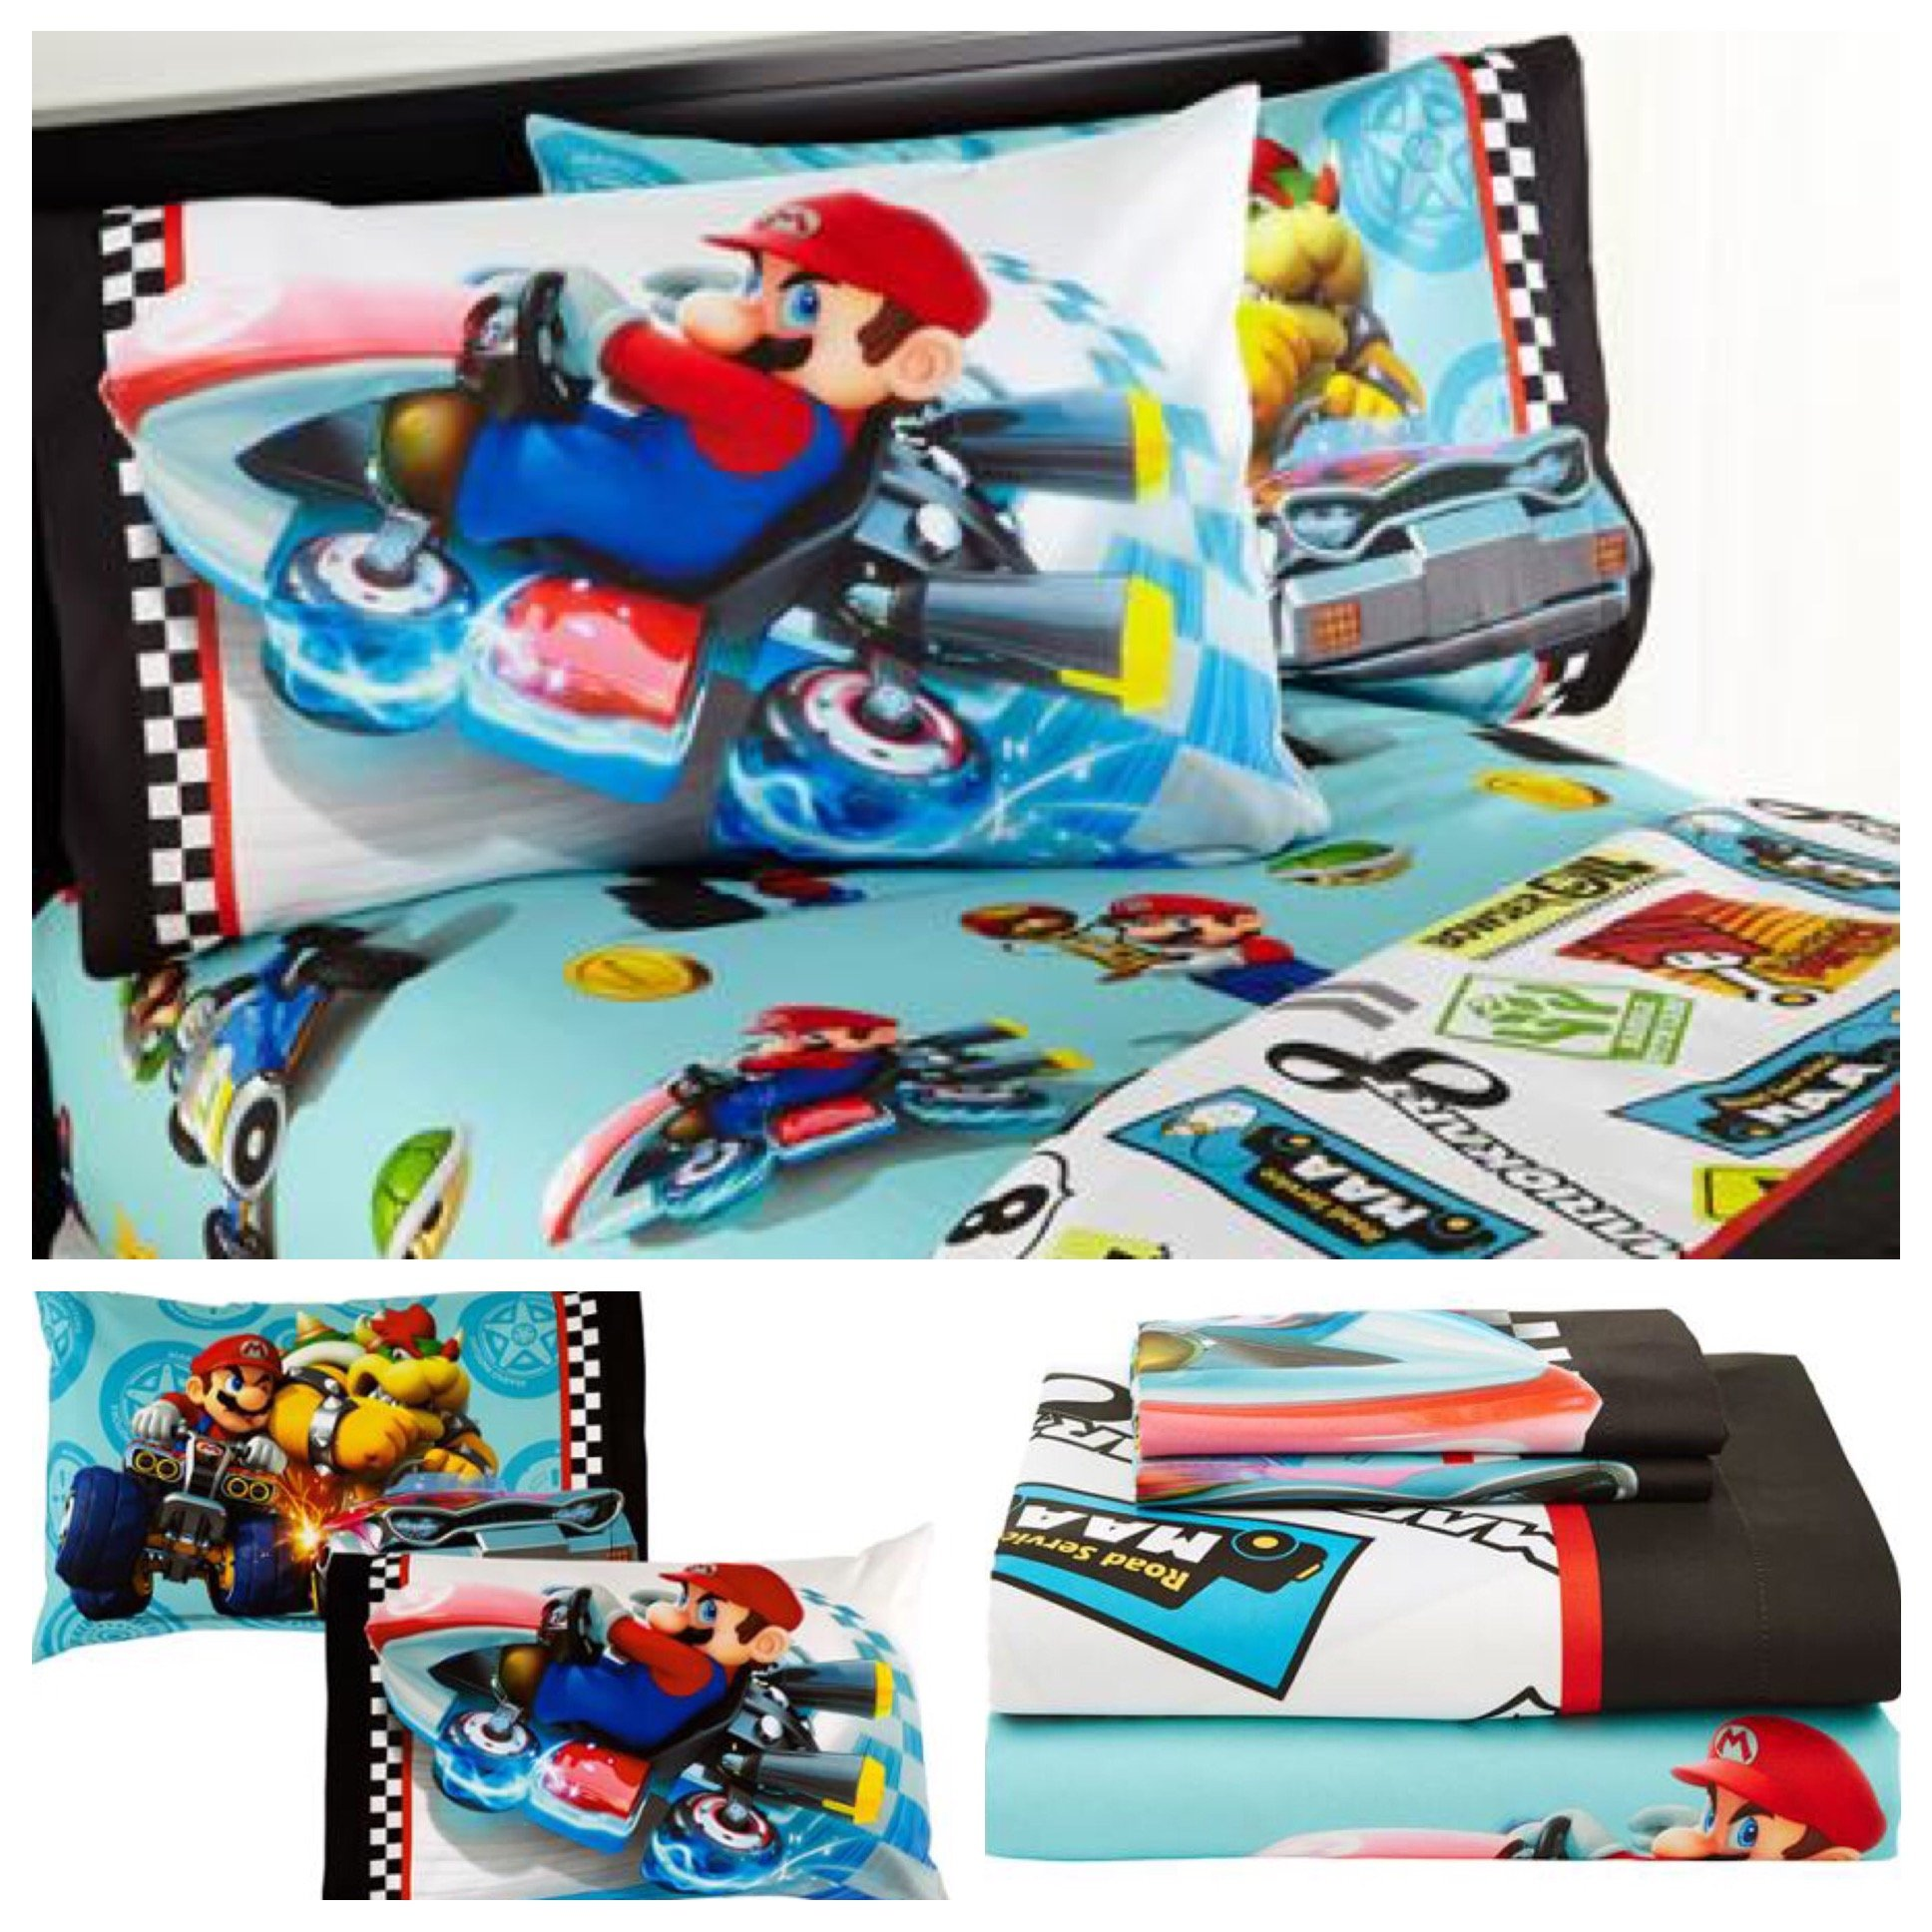 Nintendo Mario Kart Super Mario Bros Sheet Set - Full